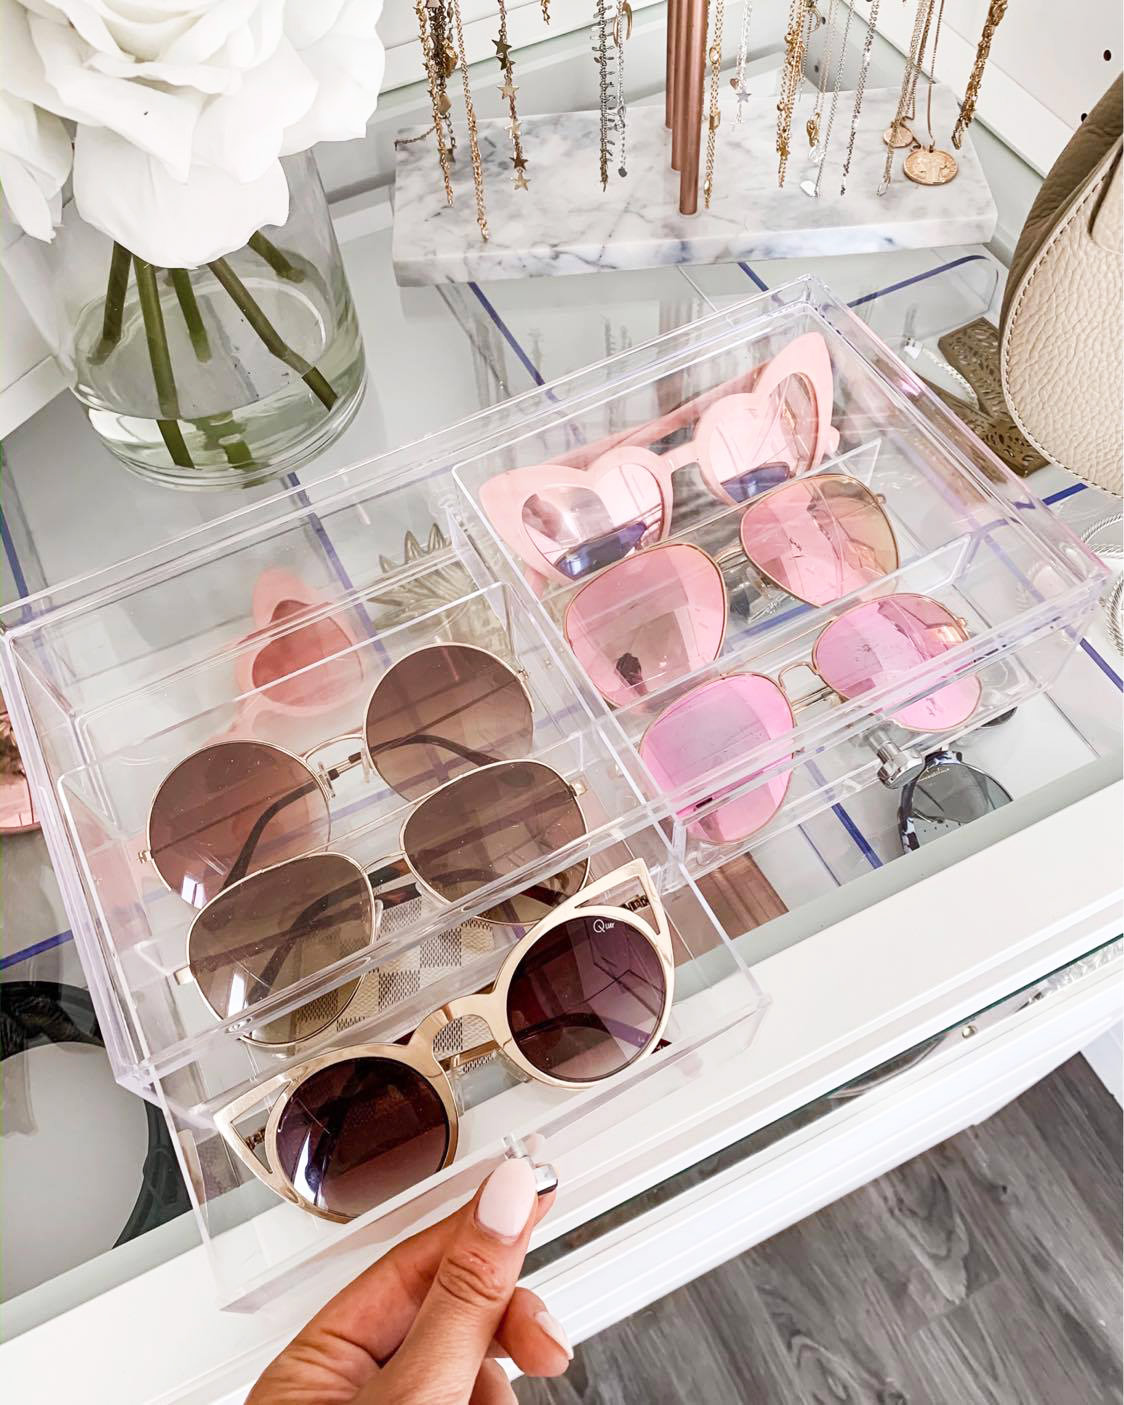 fashion accessories | organize accessories | organize your beauty items | jewelry organizer | Mash Elle lifestyle blogger | sunglasses organizer